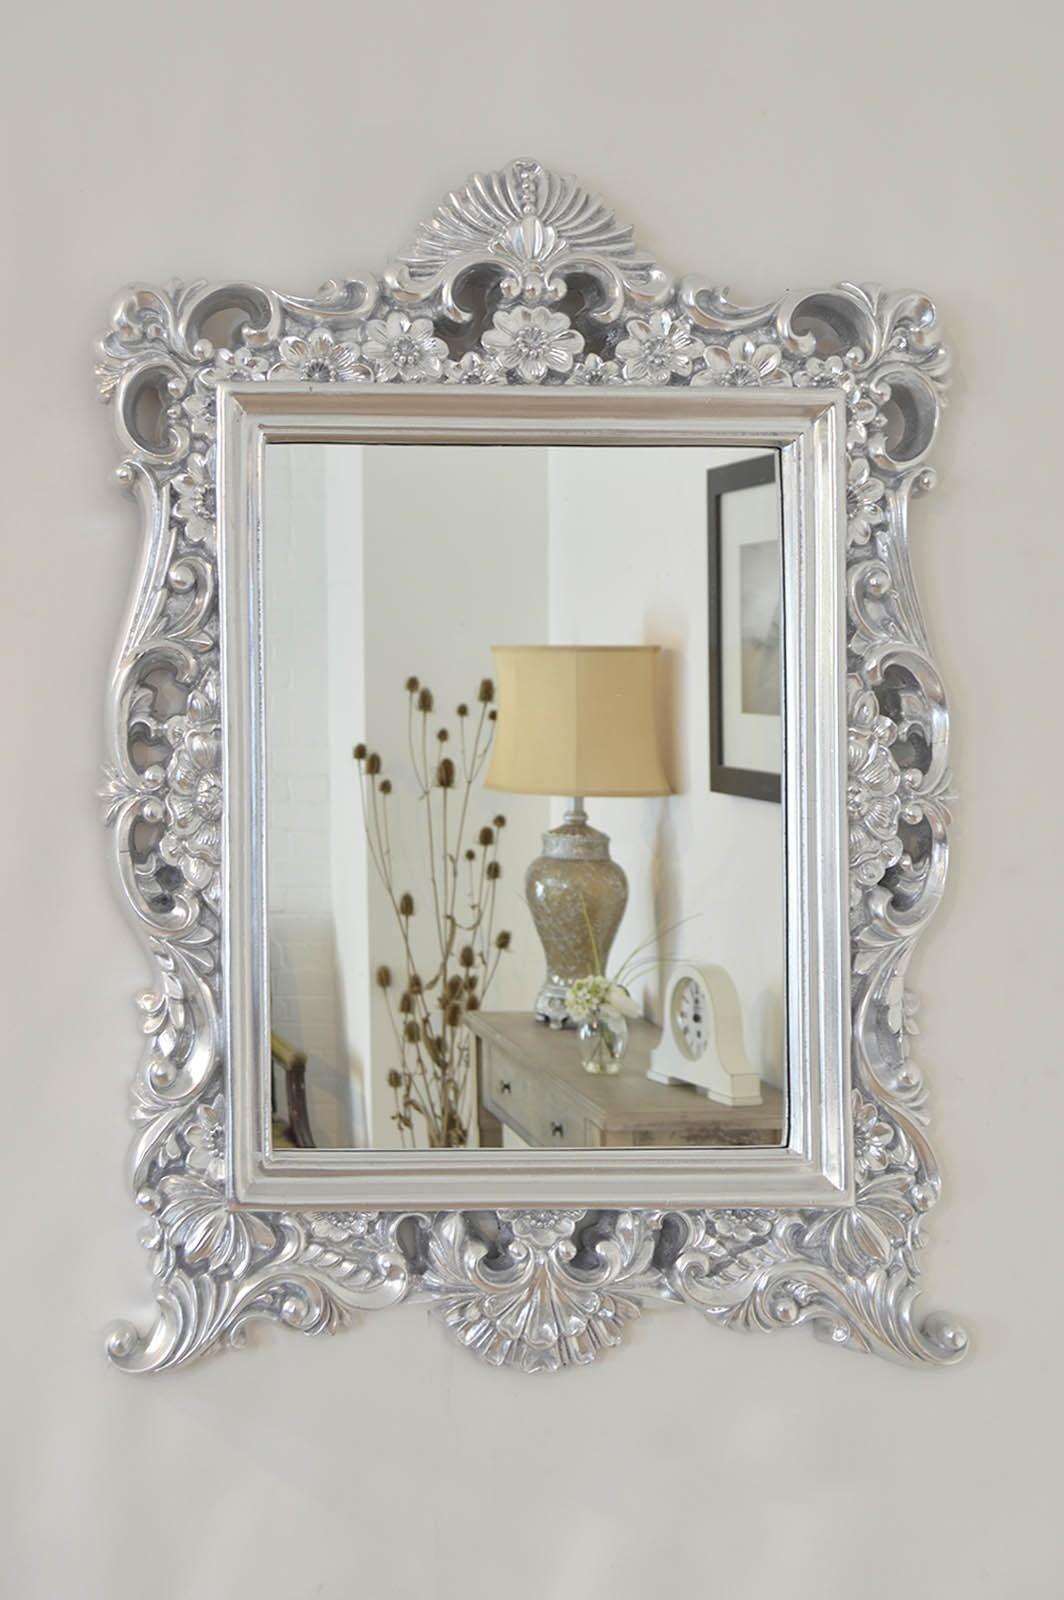 Large Silver Baroque Style Portrait Ornate Wall Mirror 2ft9 X 2ft1 Intended For Ornate Silver Mirrors (View 5 of 15)